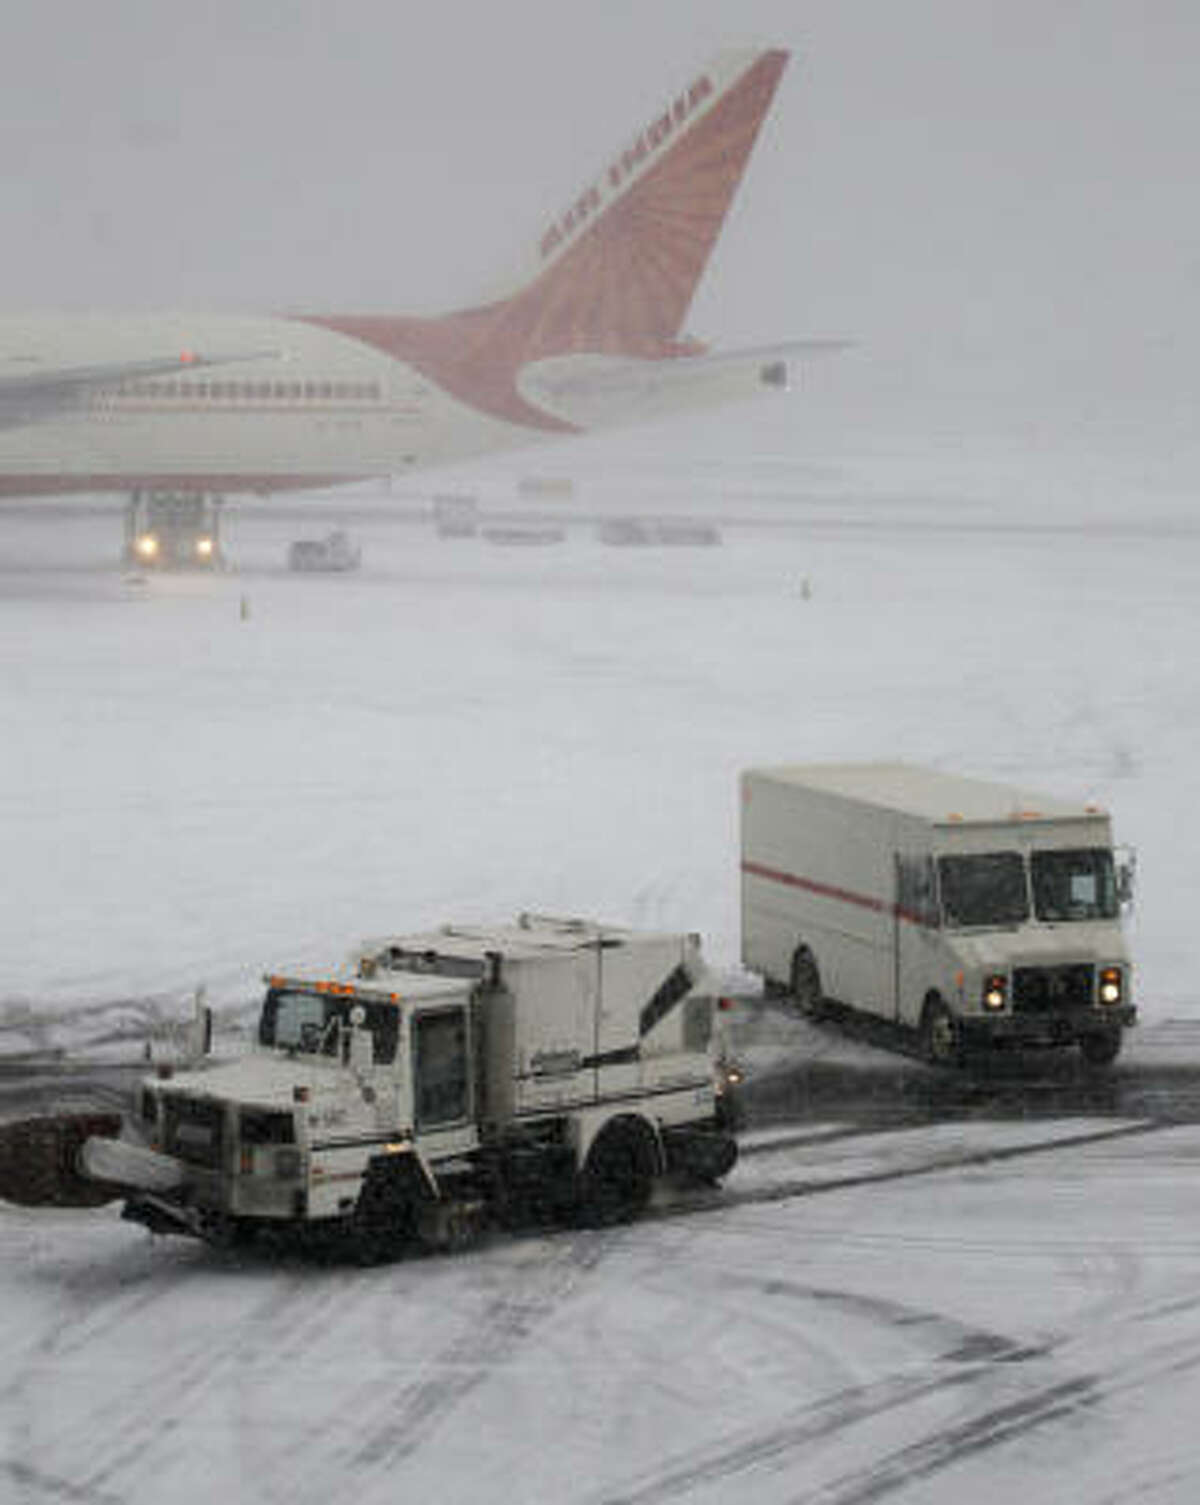 An Air India plane is seen at Newark Liberty International Airport during Sunday's snow storm.